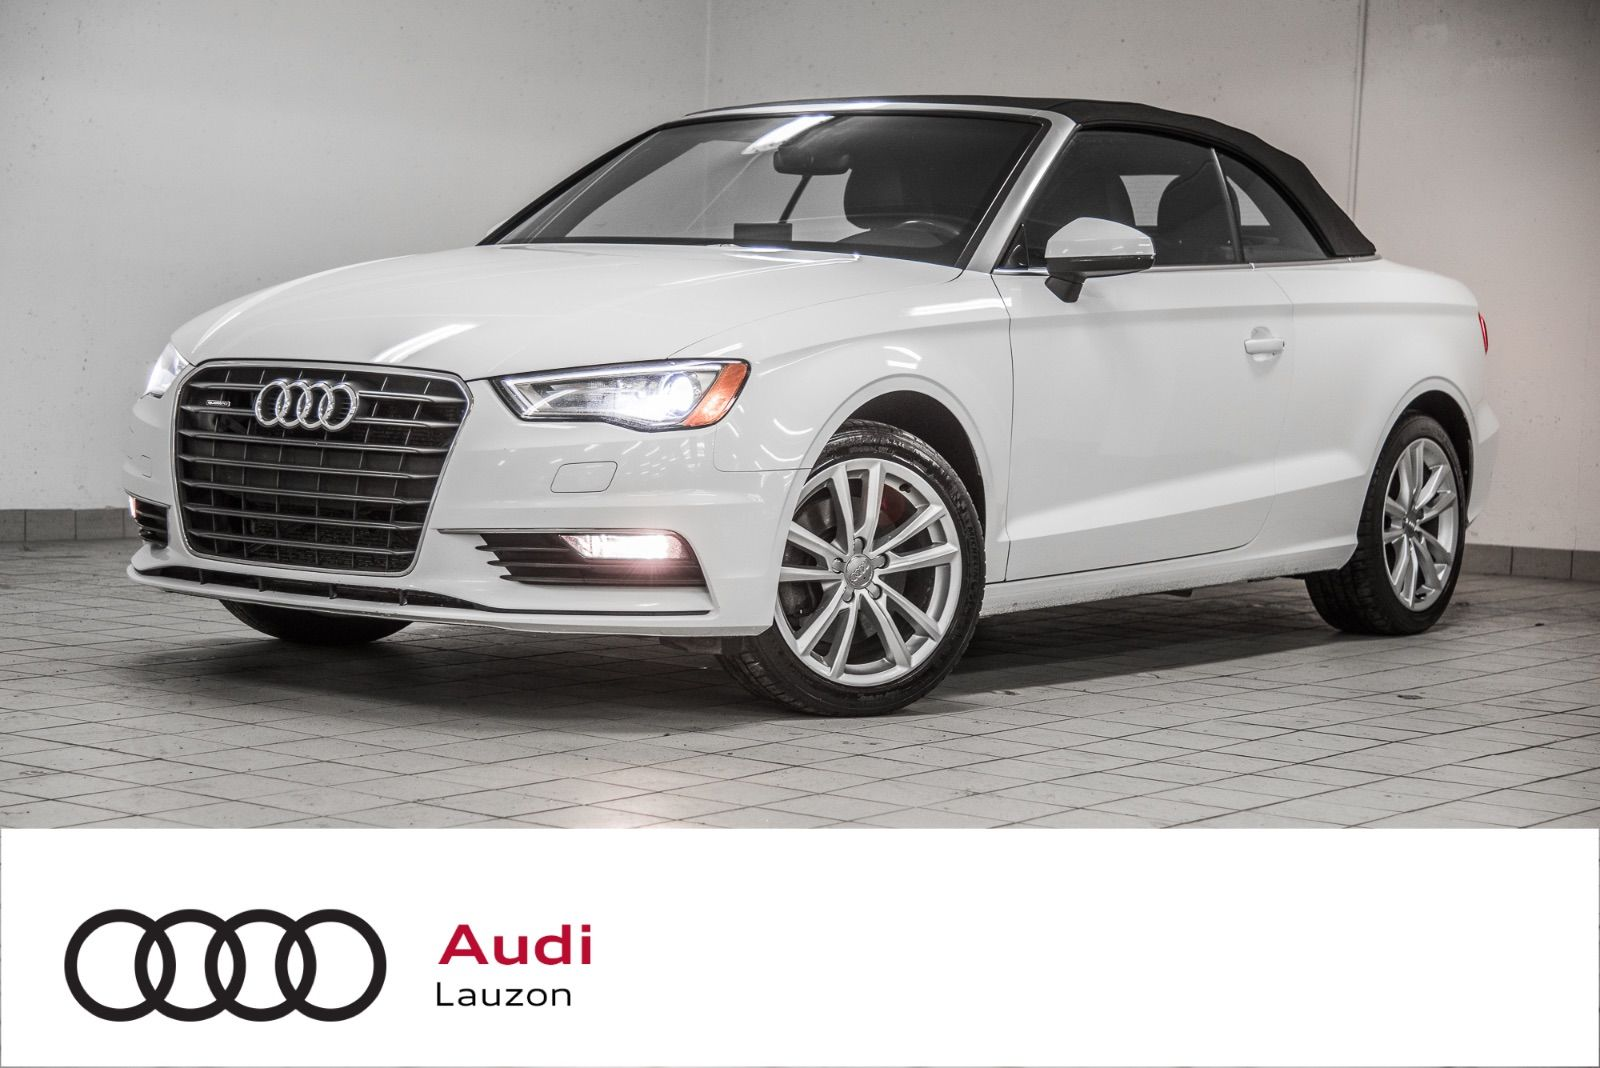 Audi Lauzon Pre Owned 2016 Audi A3 Cabriolet Cabriolet Quattro Komfort For Sale In Laval